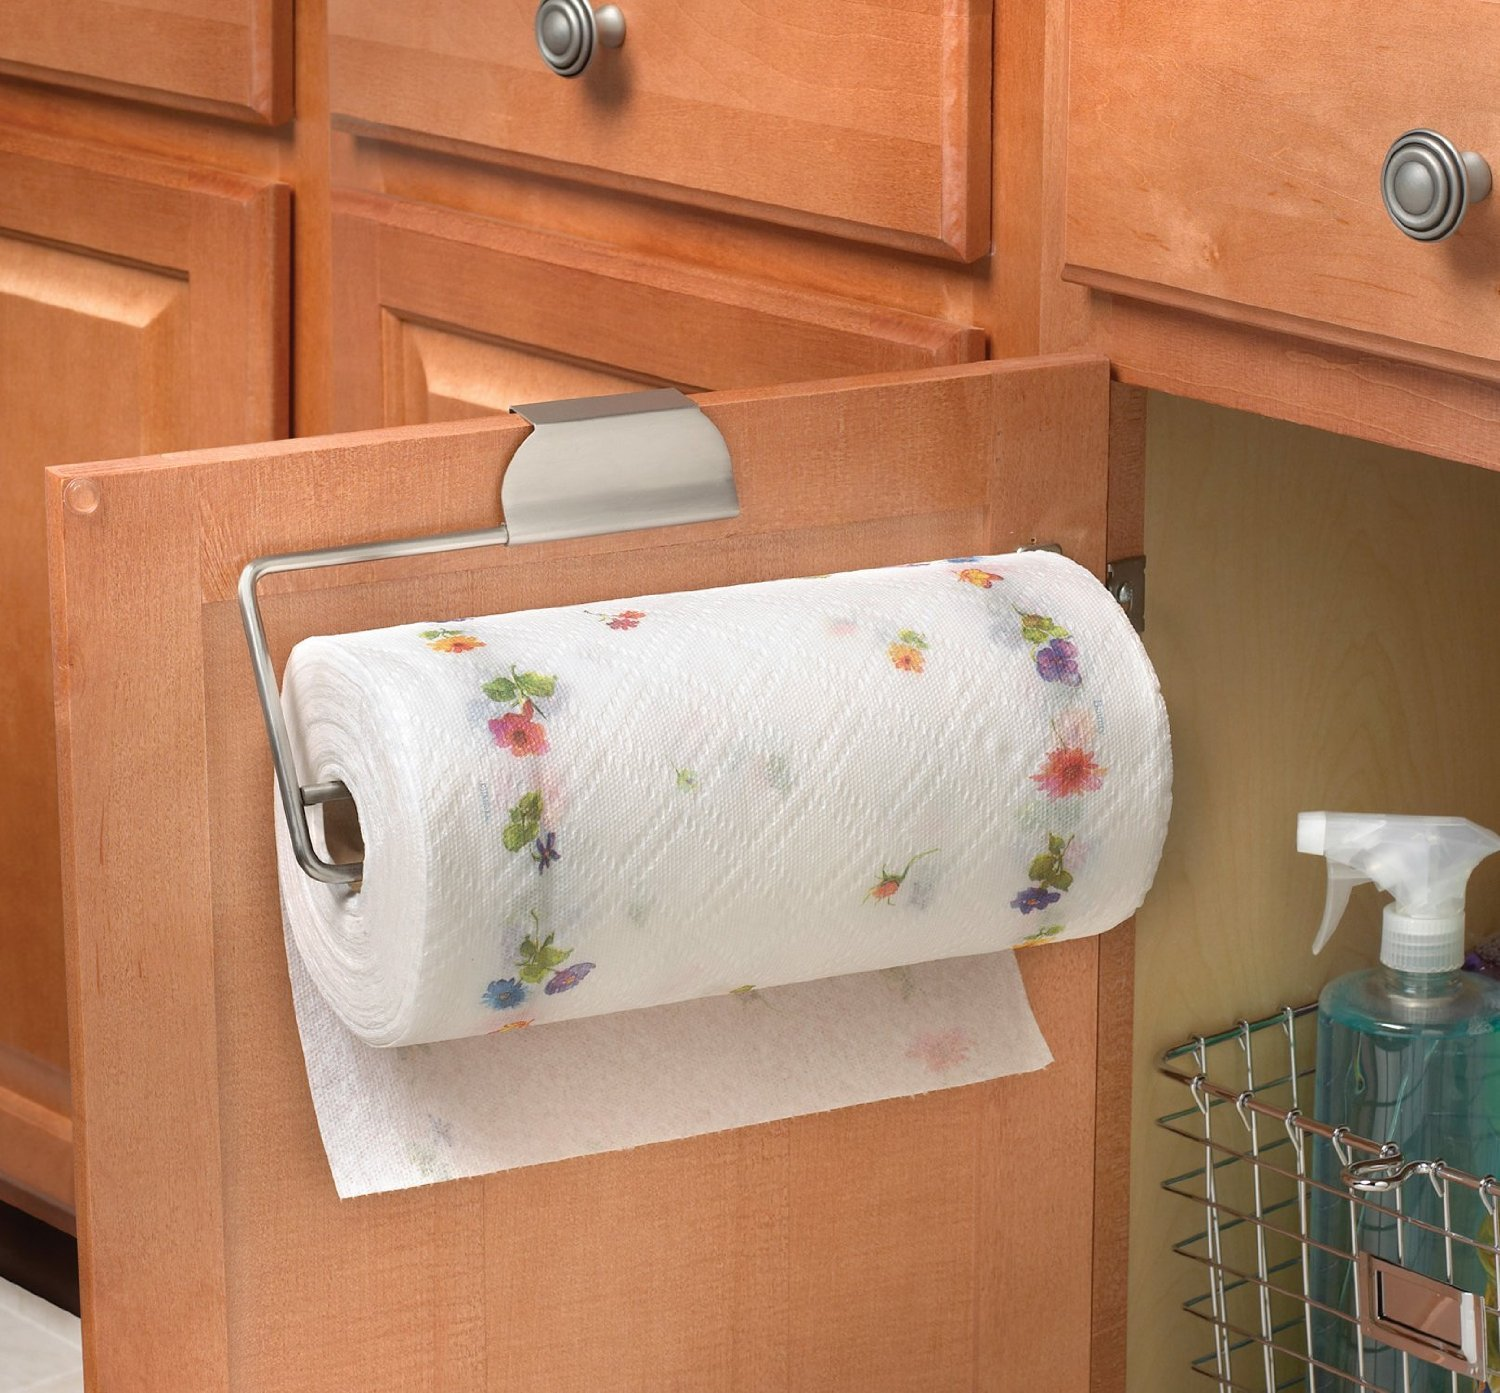 wood sink kitchen with bathroom towel paper shelf holder organizer